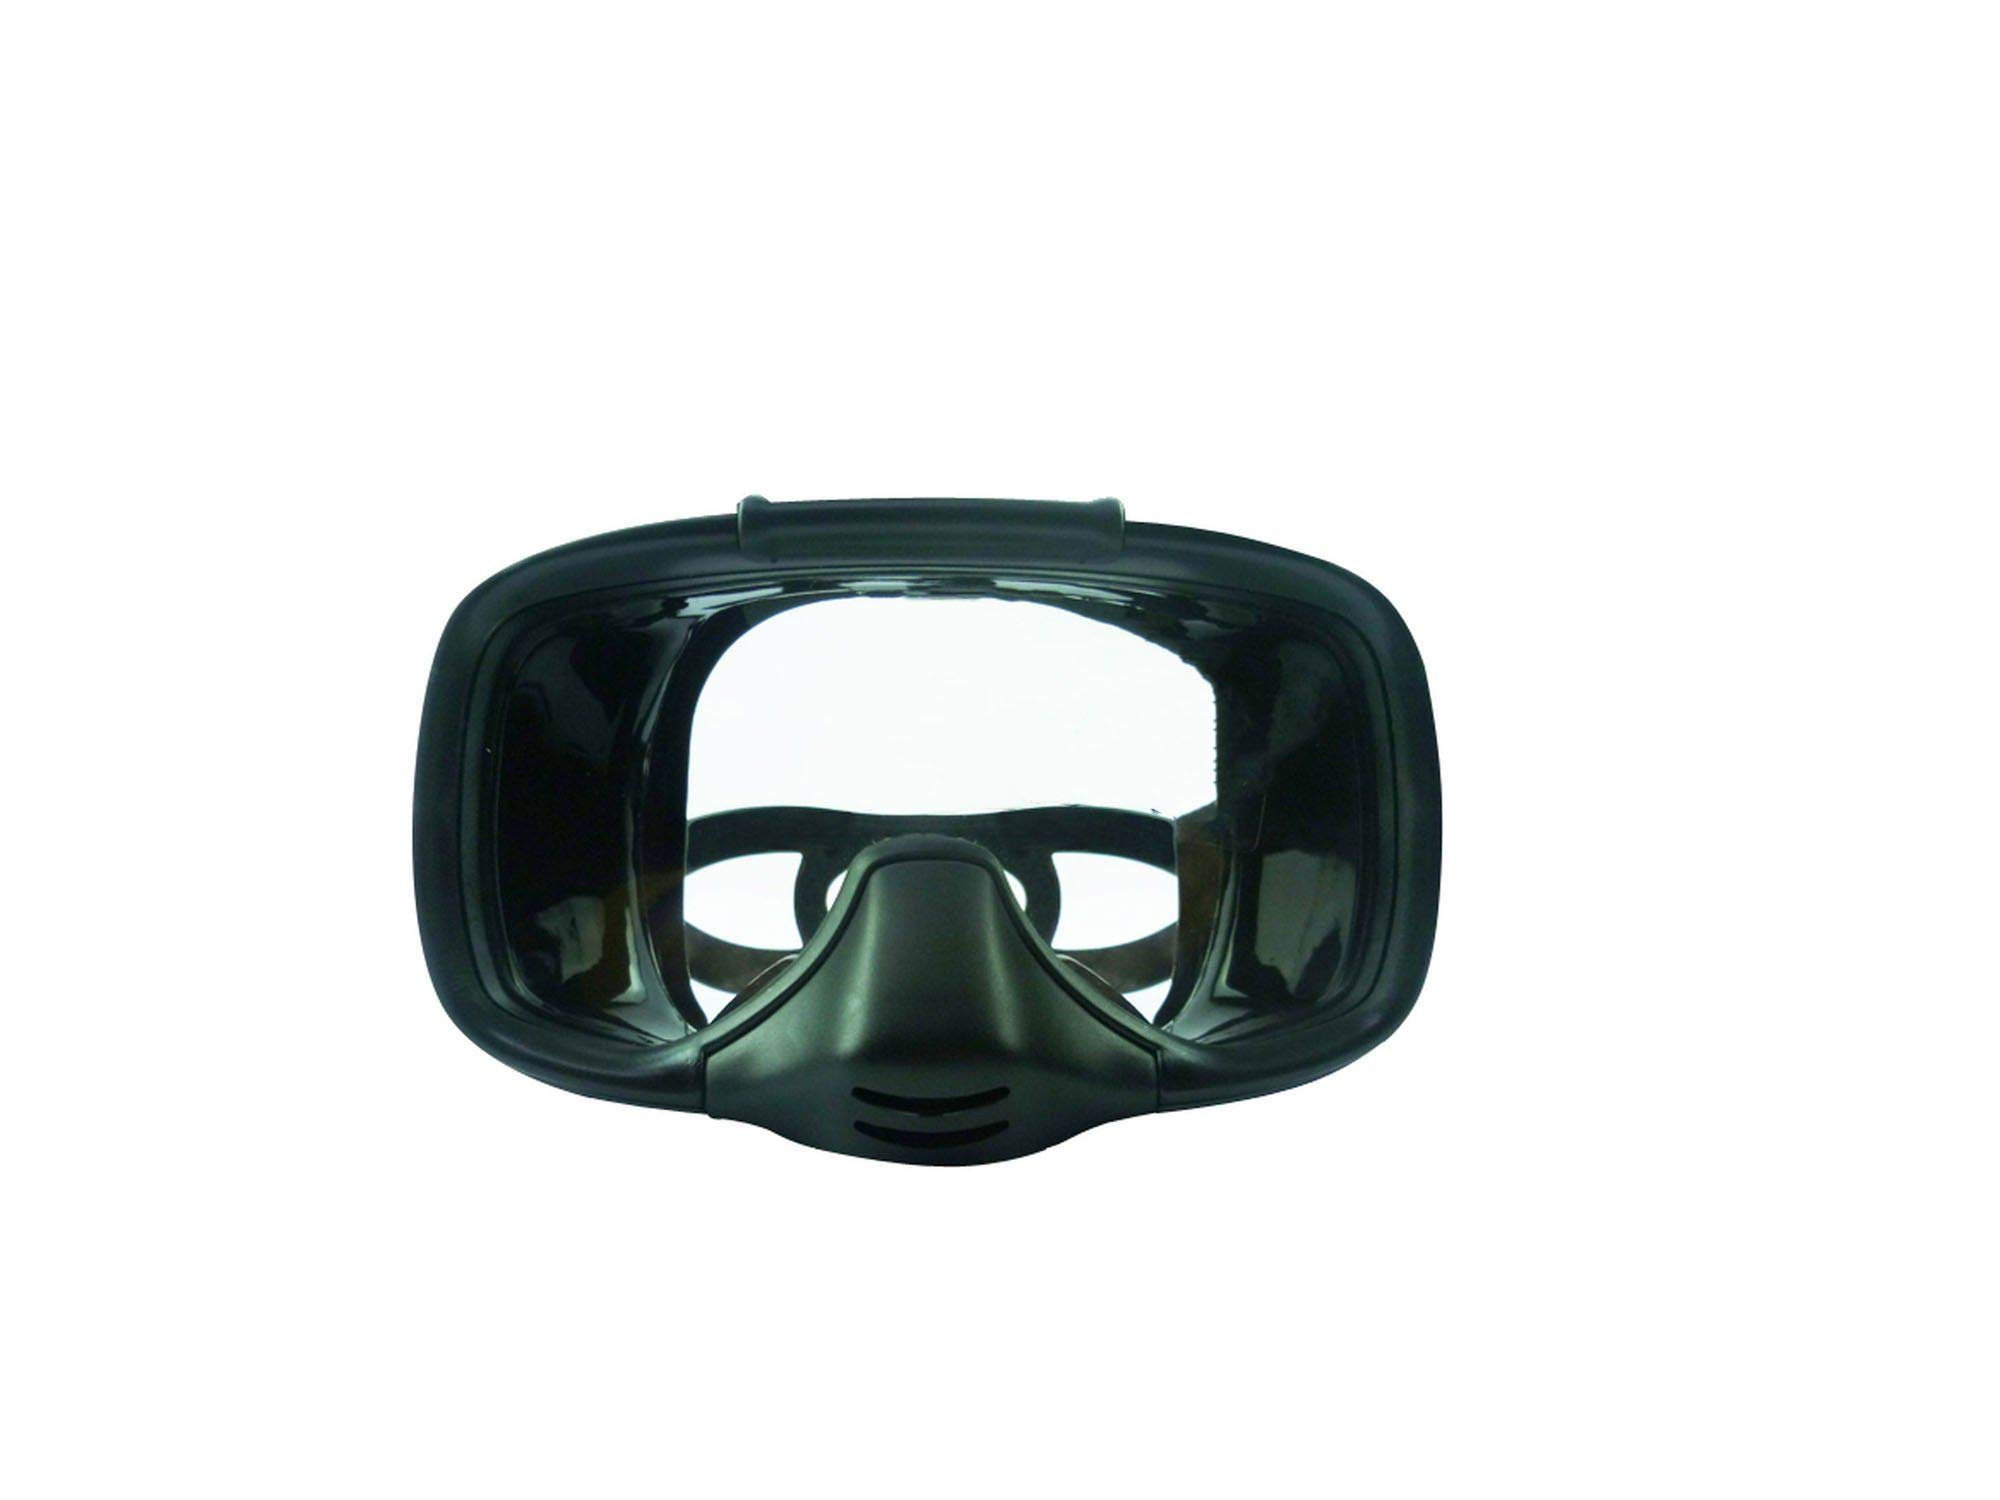 Fly-Town Diving Mask Diving Glasses Full Face Diving Mask Underwater Hunting Snorkeling Swimming,Black by Fly-Town